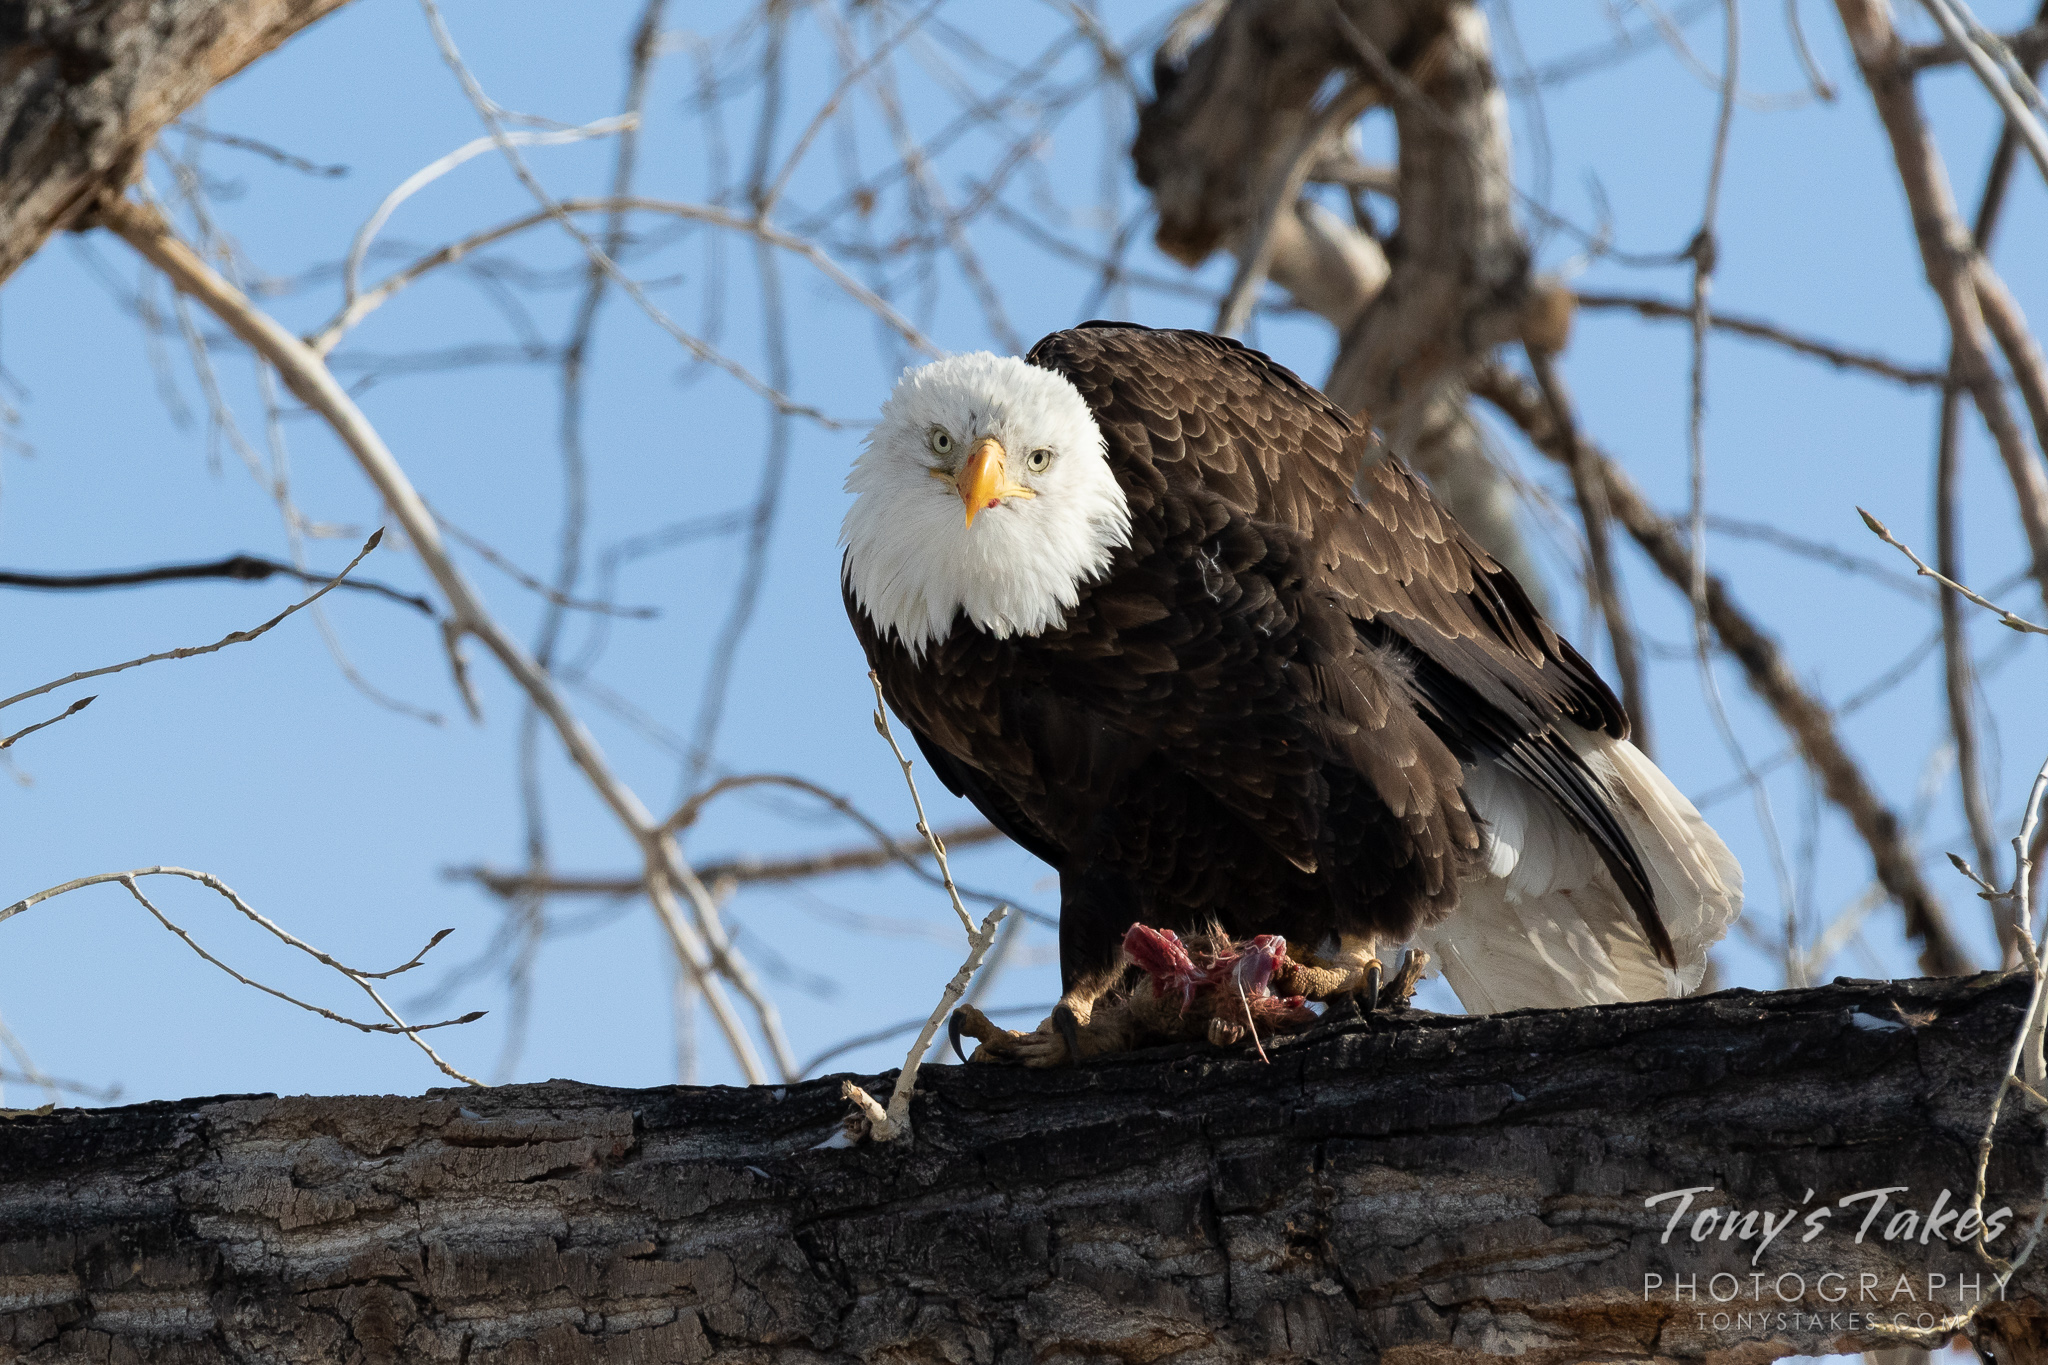 Bald eagle enjoys its New Year's Day meal